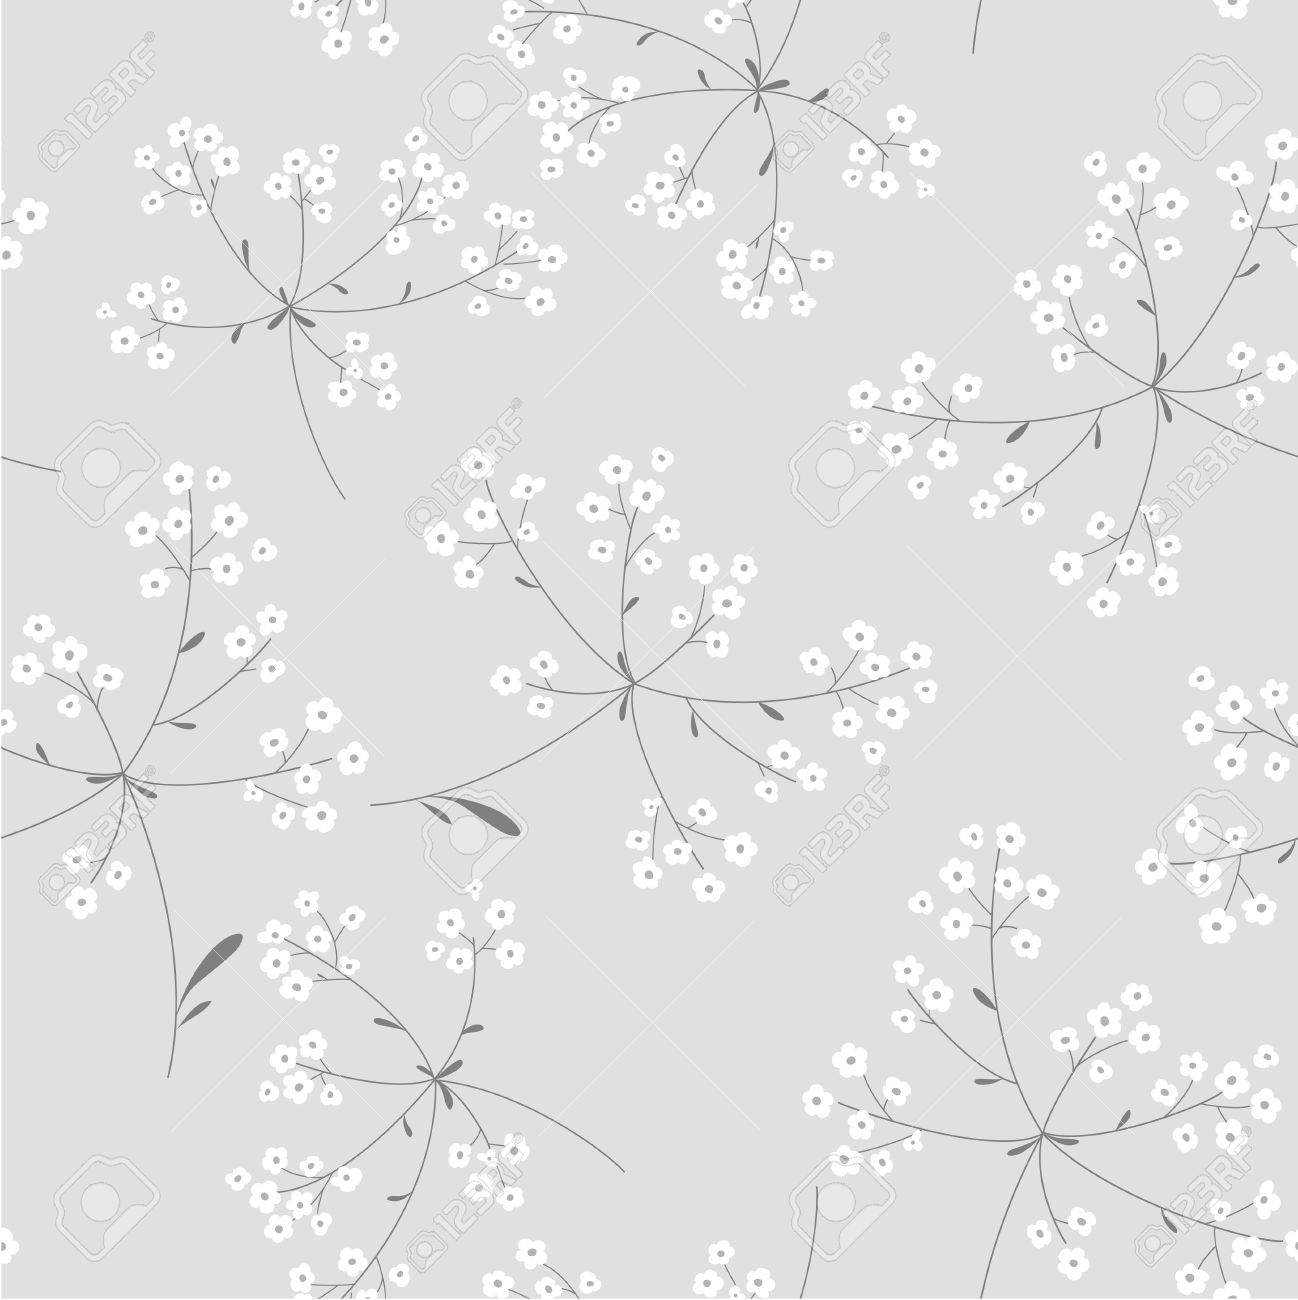 Seamless Black And White Floral Background Royalty Free Cliparts